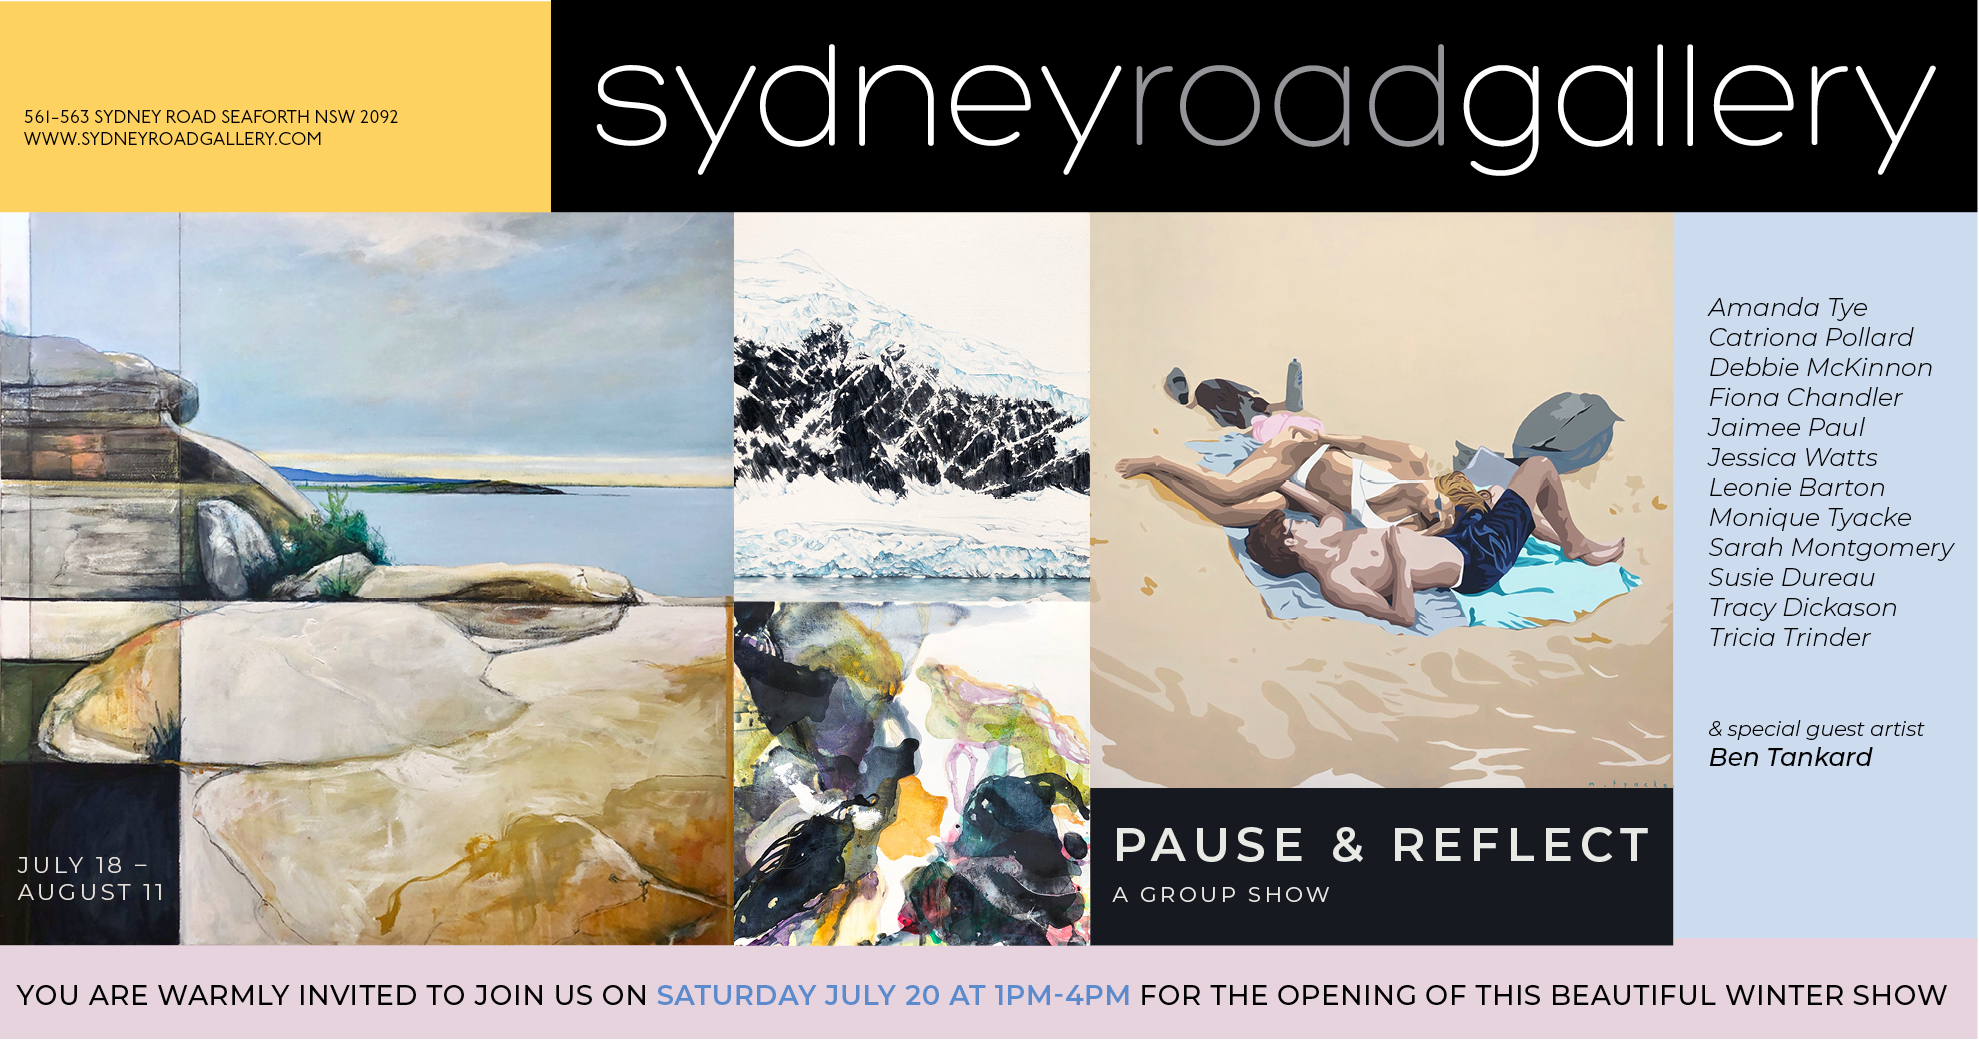 Pause & reflect - A group showWhen: 18th July - 11h August 2019Times: Thursday - Saturday 10am - 4pm & Sunday 9am - 12pmLocation: Sydney Road Gallery, 563 Sydney Road, Seaforth, NSW, 2092